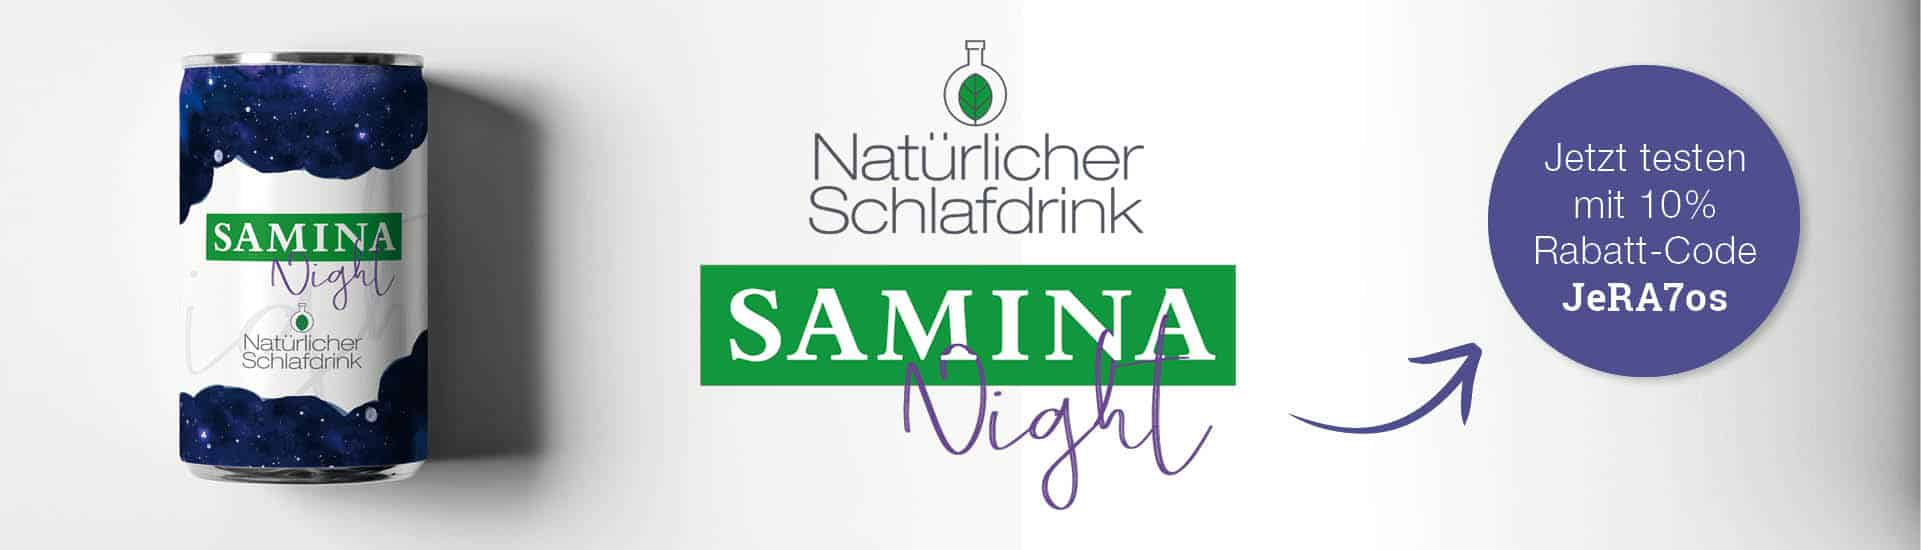 SAMINA Night - der nat�rliche Schlafdrink